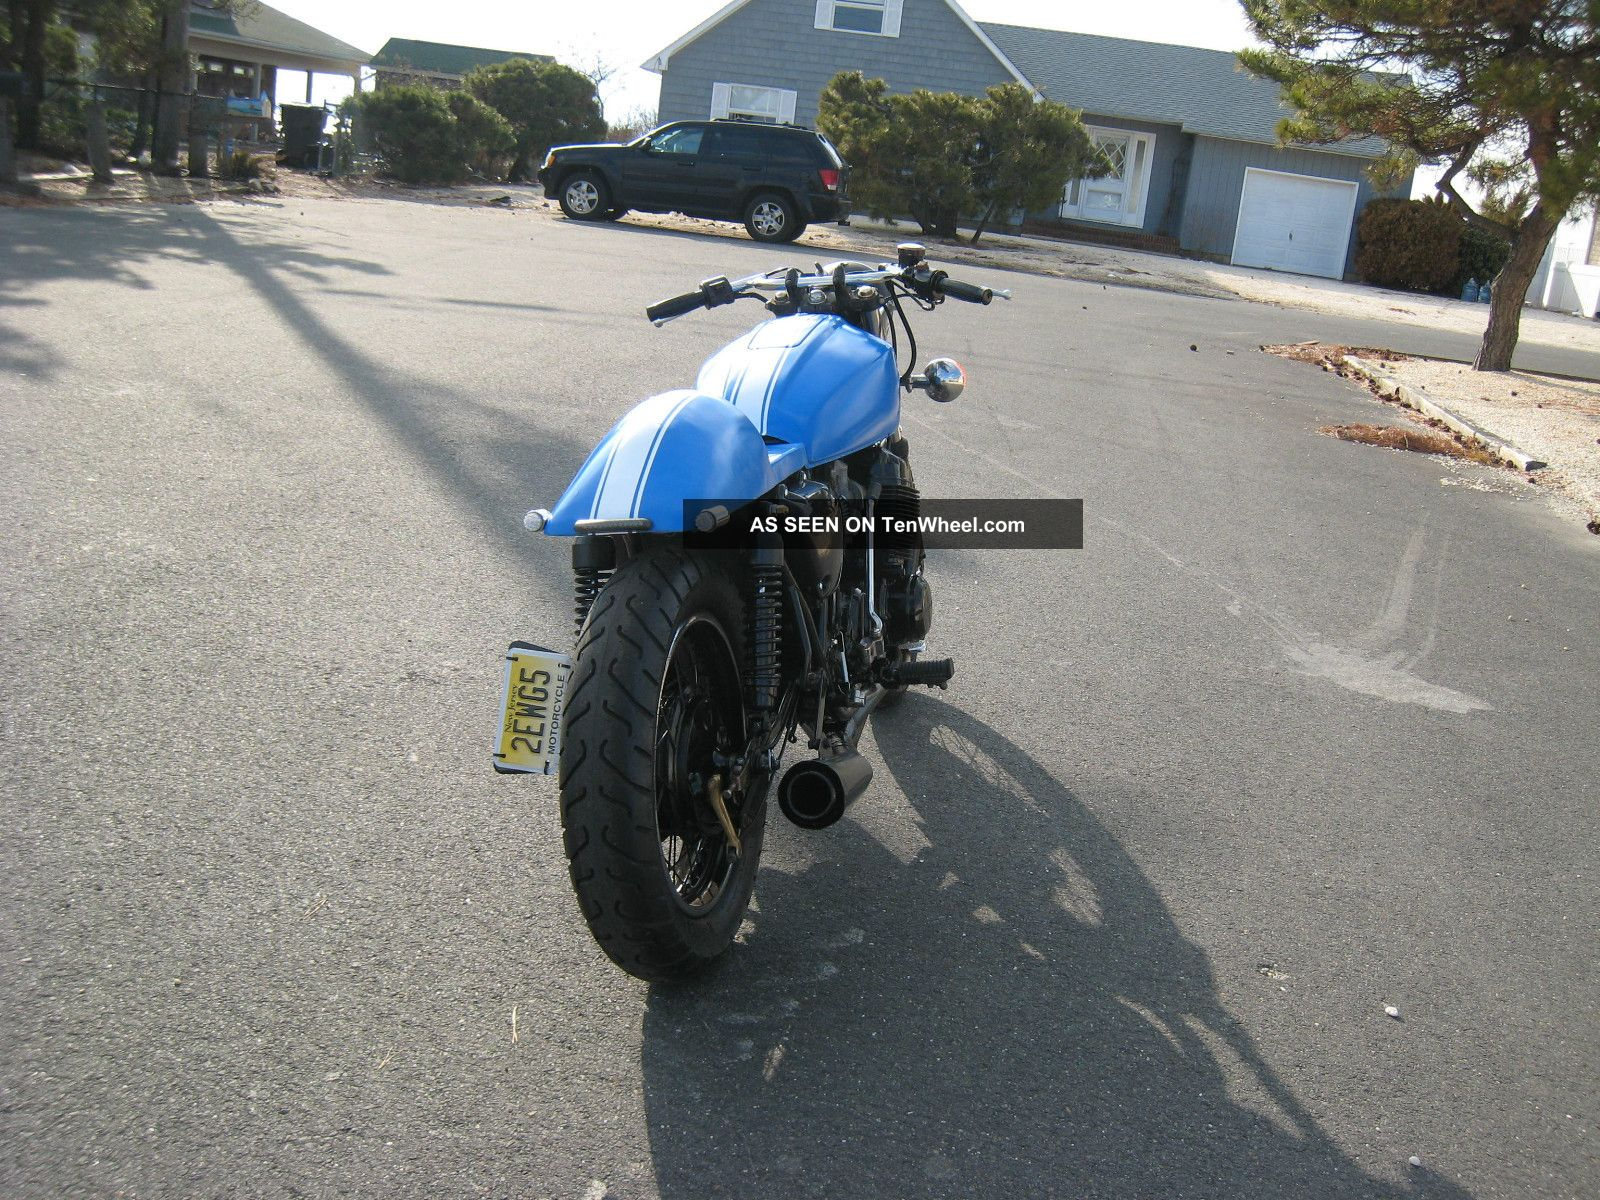 1978 Honda Cb750 Cafe Racer Cb 750 CB photo